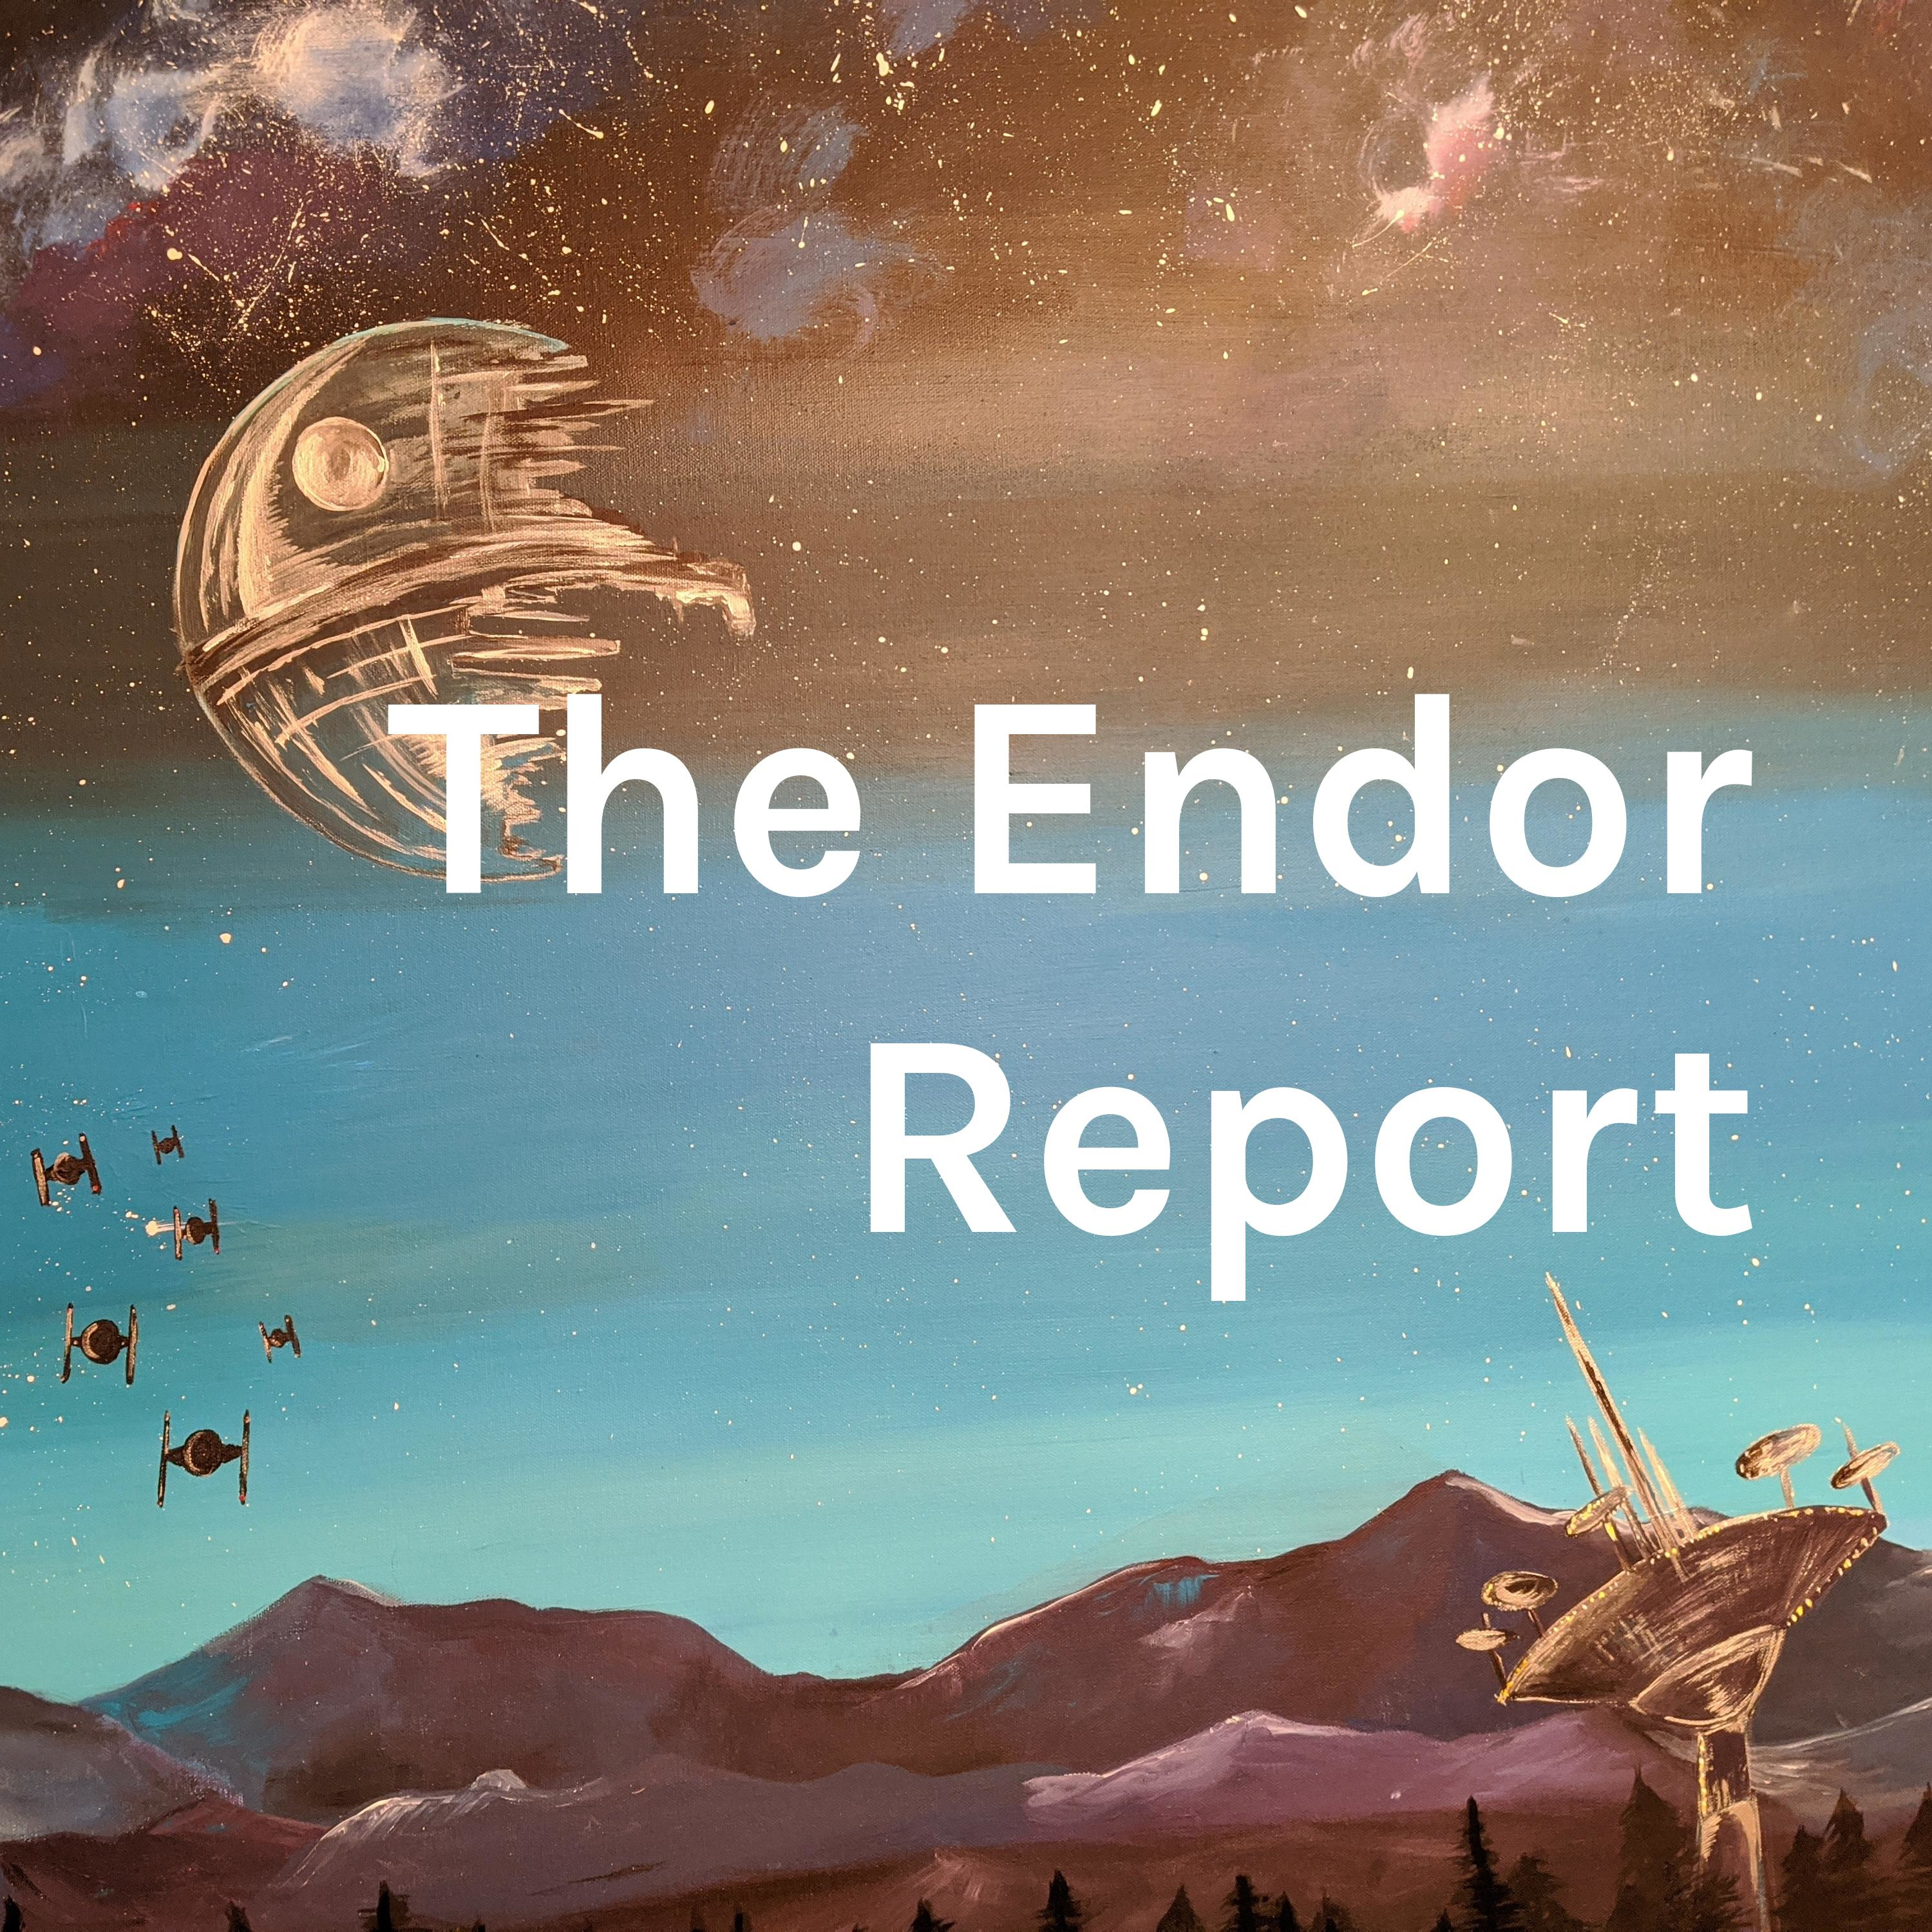 The Endor Report - A Star Wars Podcast